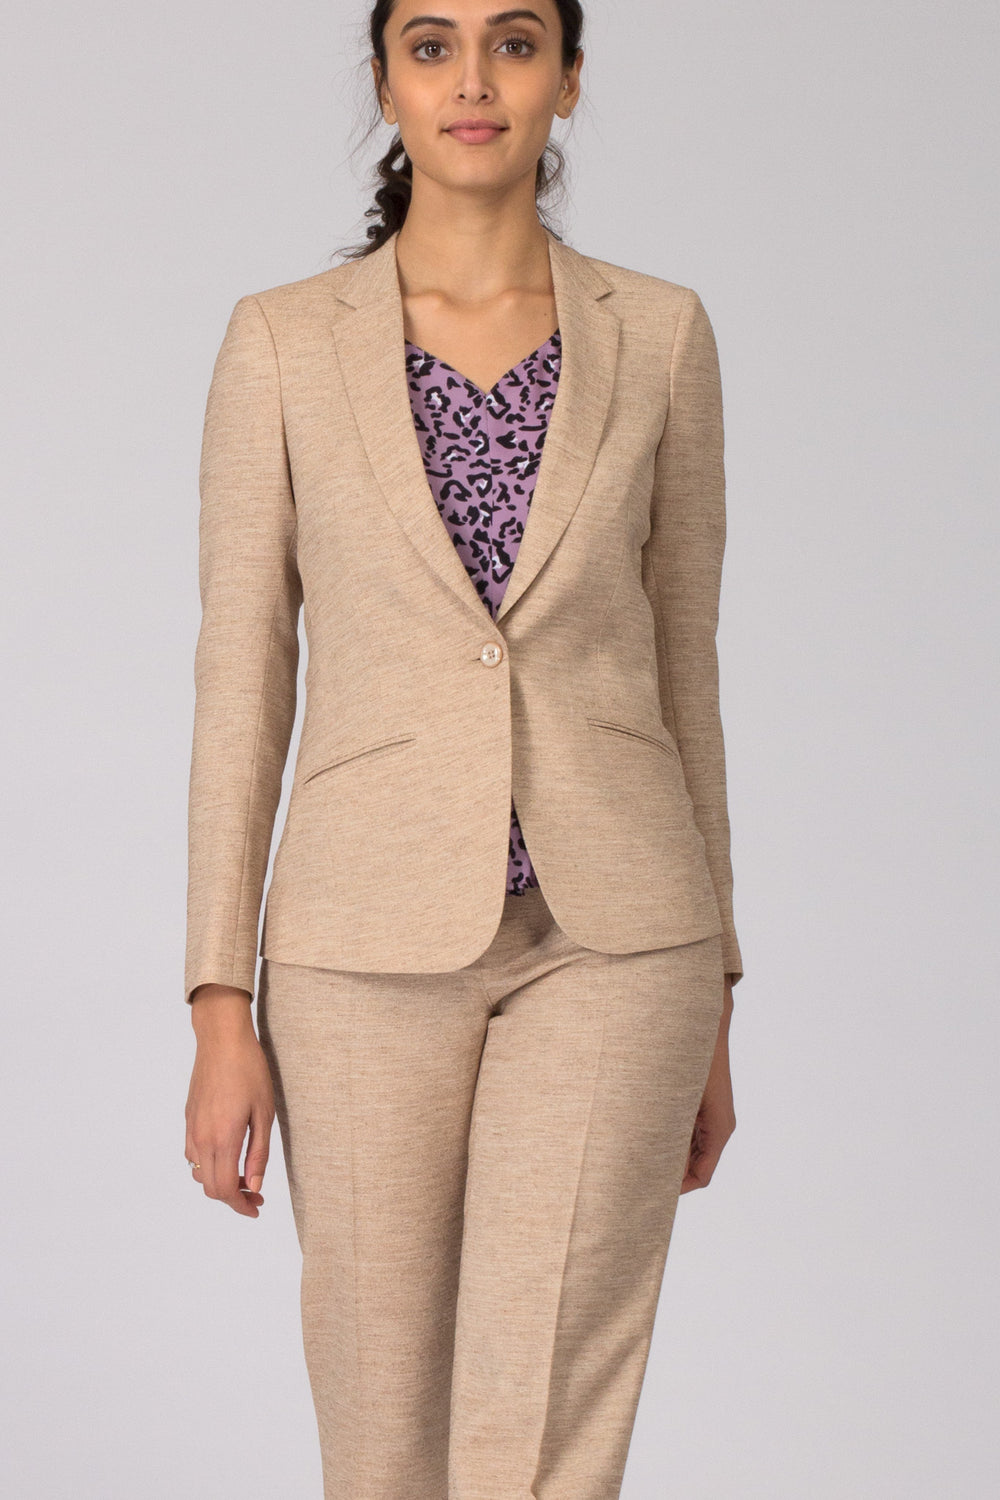 Beige Formal Blazer Suit for Office going Women. Shop online for a variety of office looks and professional wear at www.intermod.in